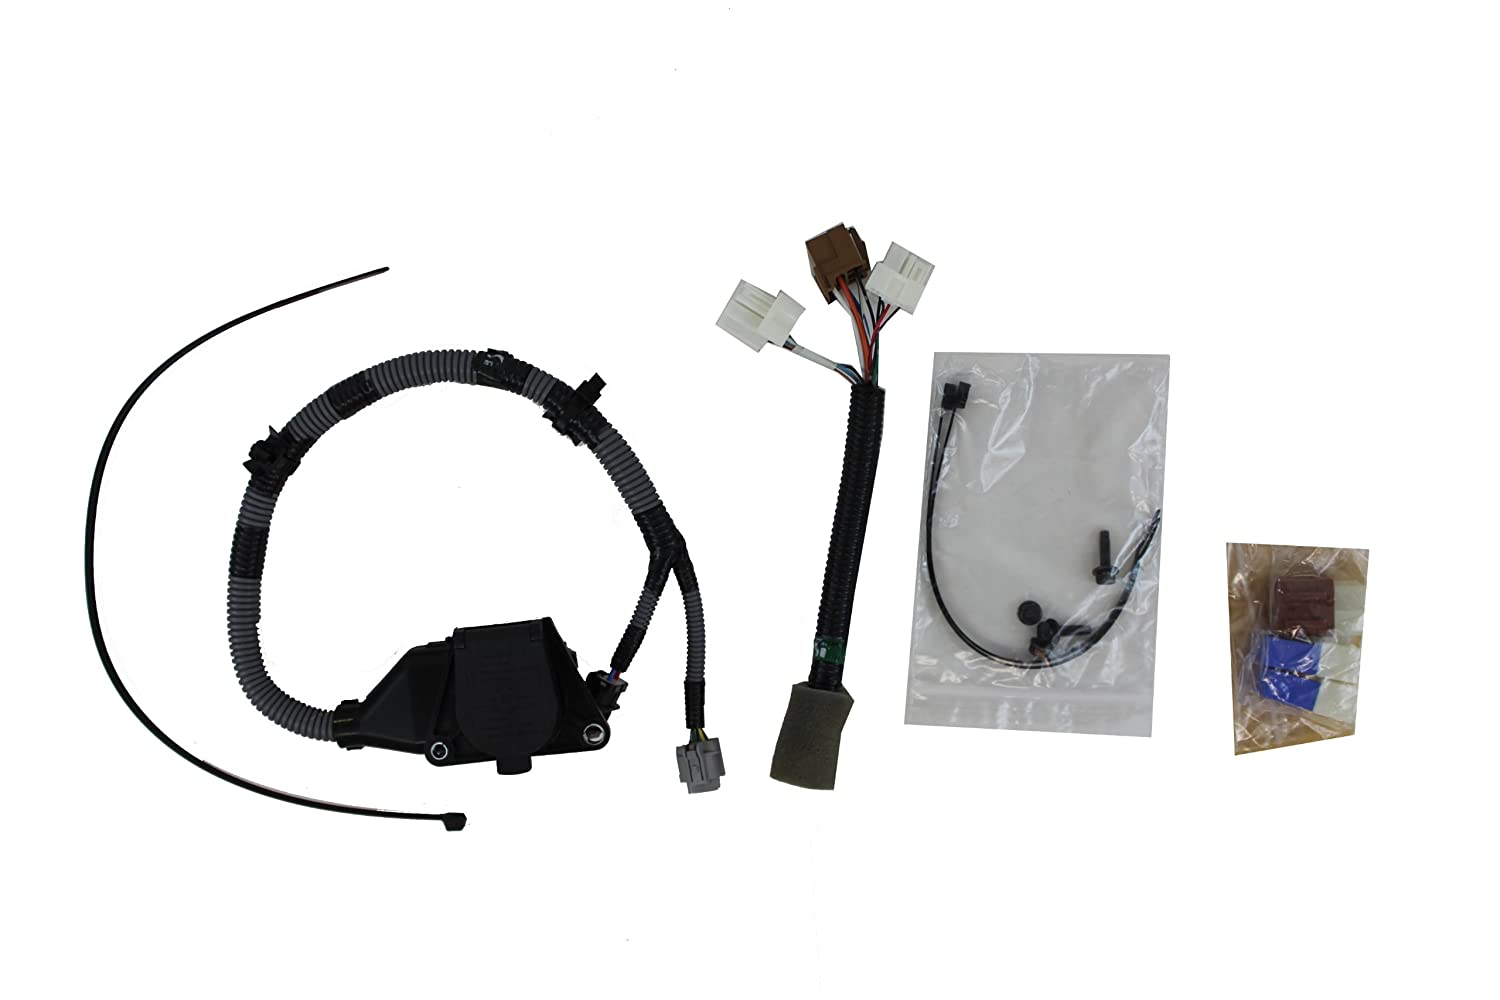 Genuine Nissan Accessories 999t8 Br020 7 Pin Tow Harness 2012 Frontier Way Flat Trailer Towing Wiring Automotive